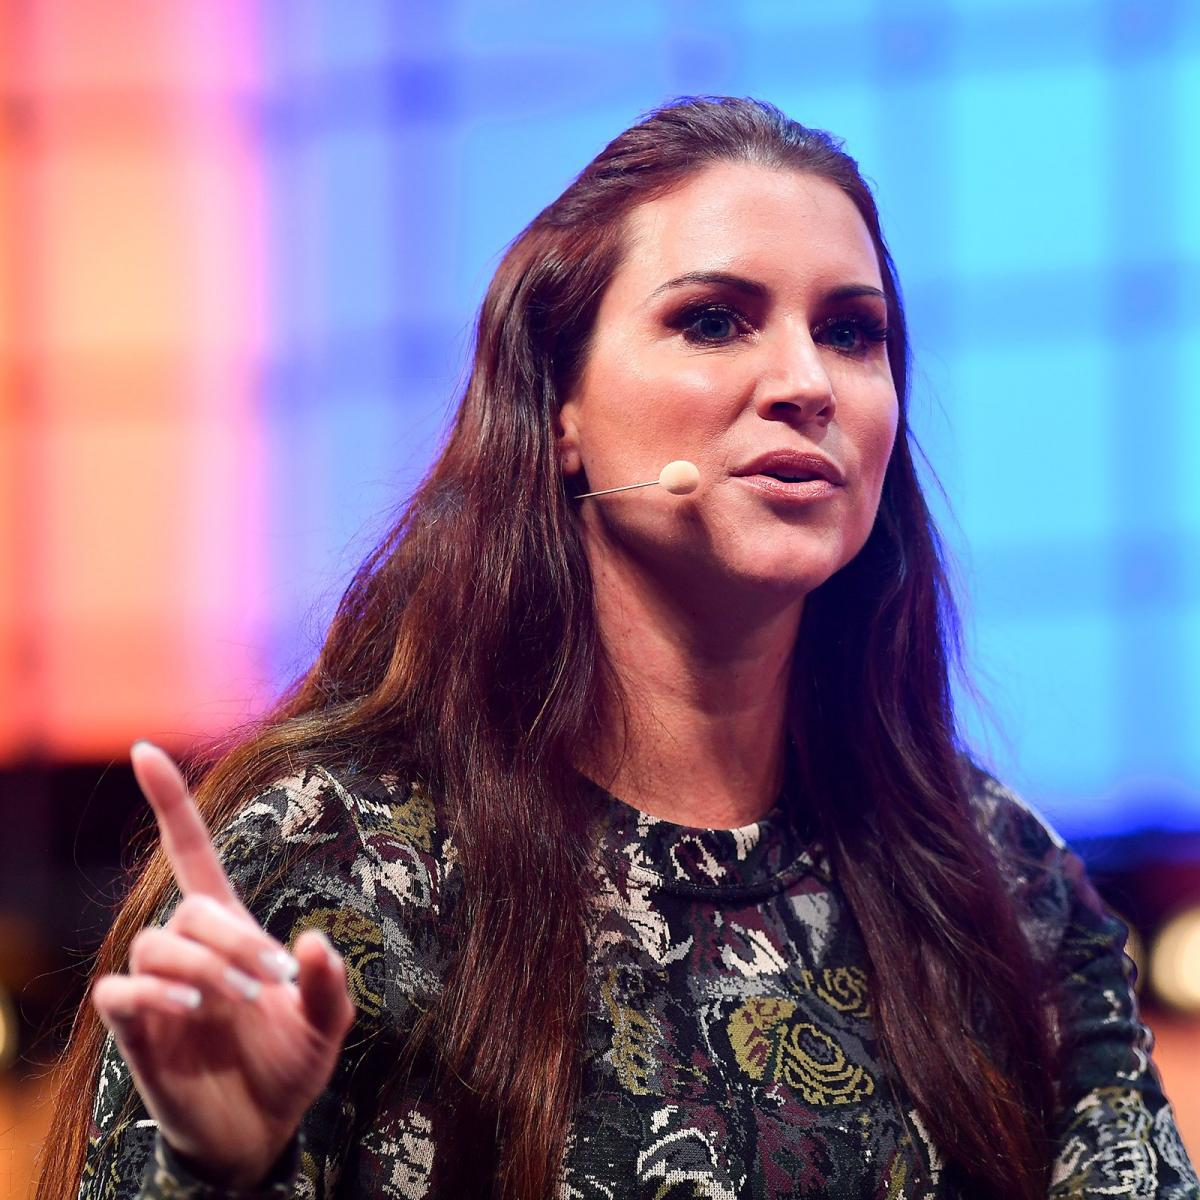 Stephanie Mcmahon Images Stephanie Mcmahon Speaks At Web Summit 2018 Hd Wallpaper And Background Photos